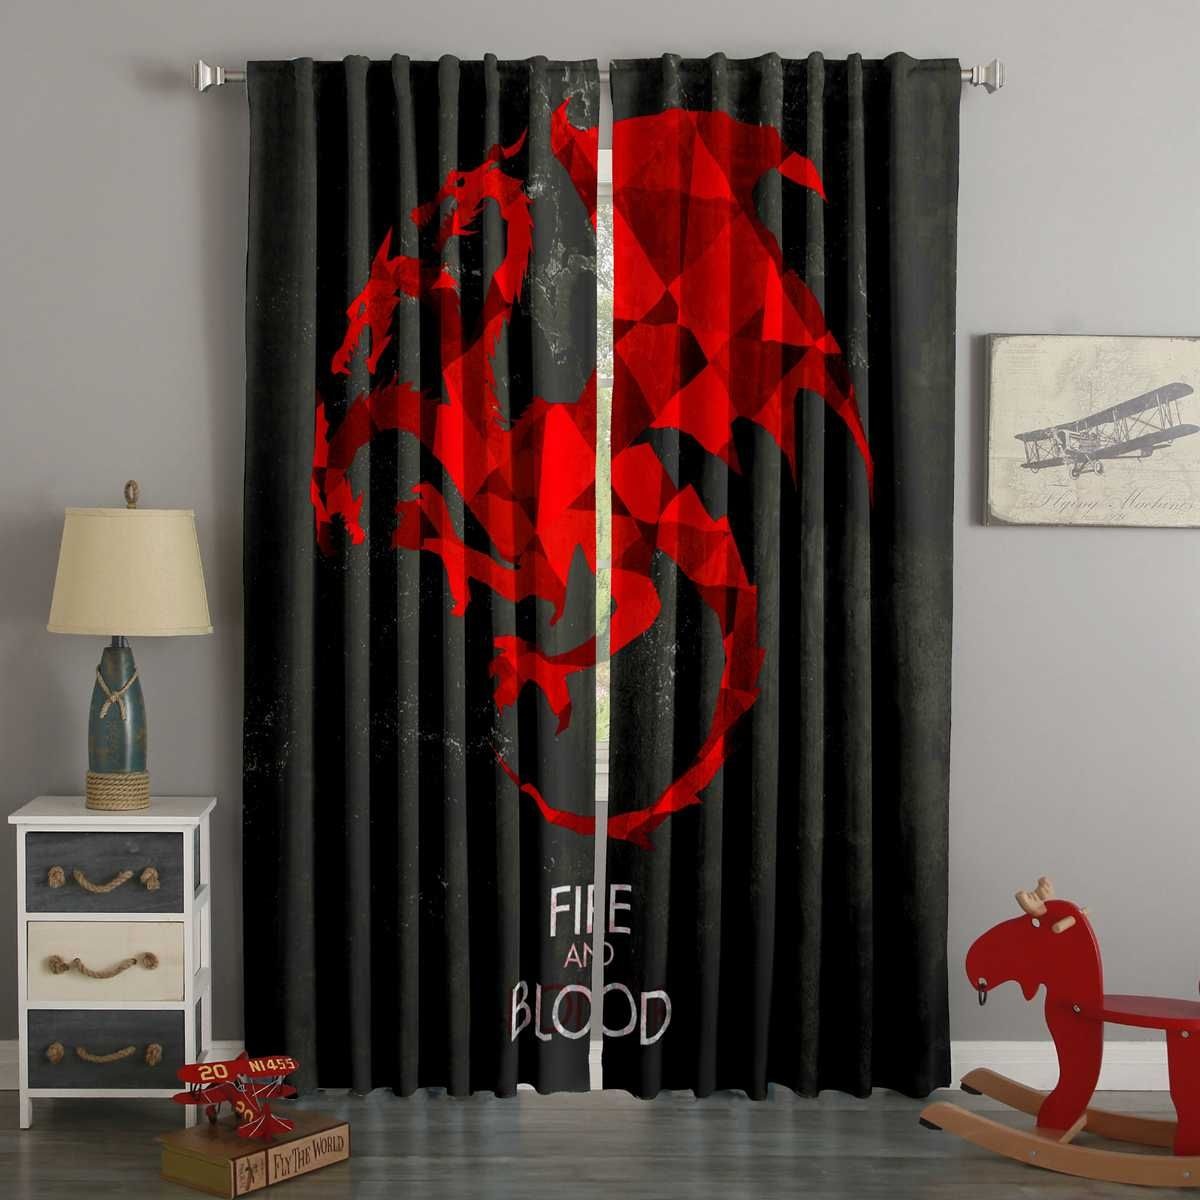 3d Printed Game Of Thrones Style Custom Living Room Curtains Curtains Living Room Curtains Custom Curtains